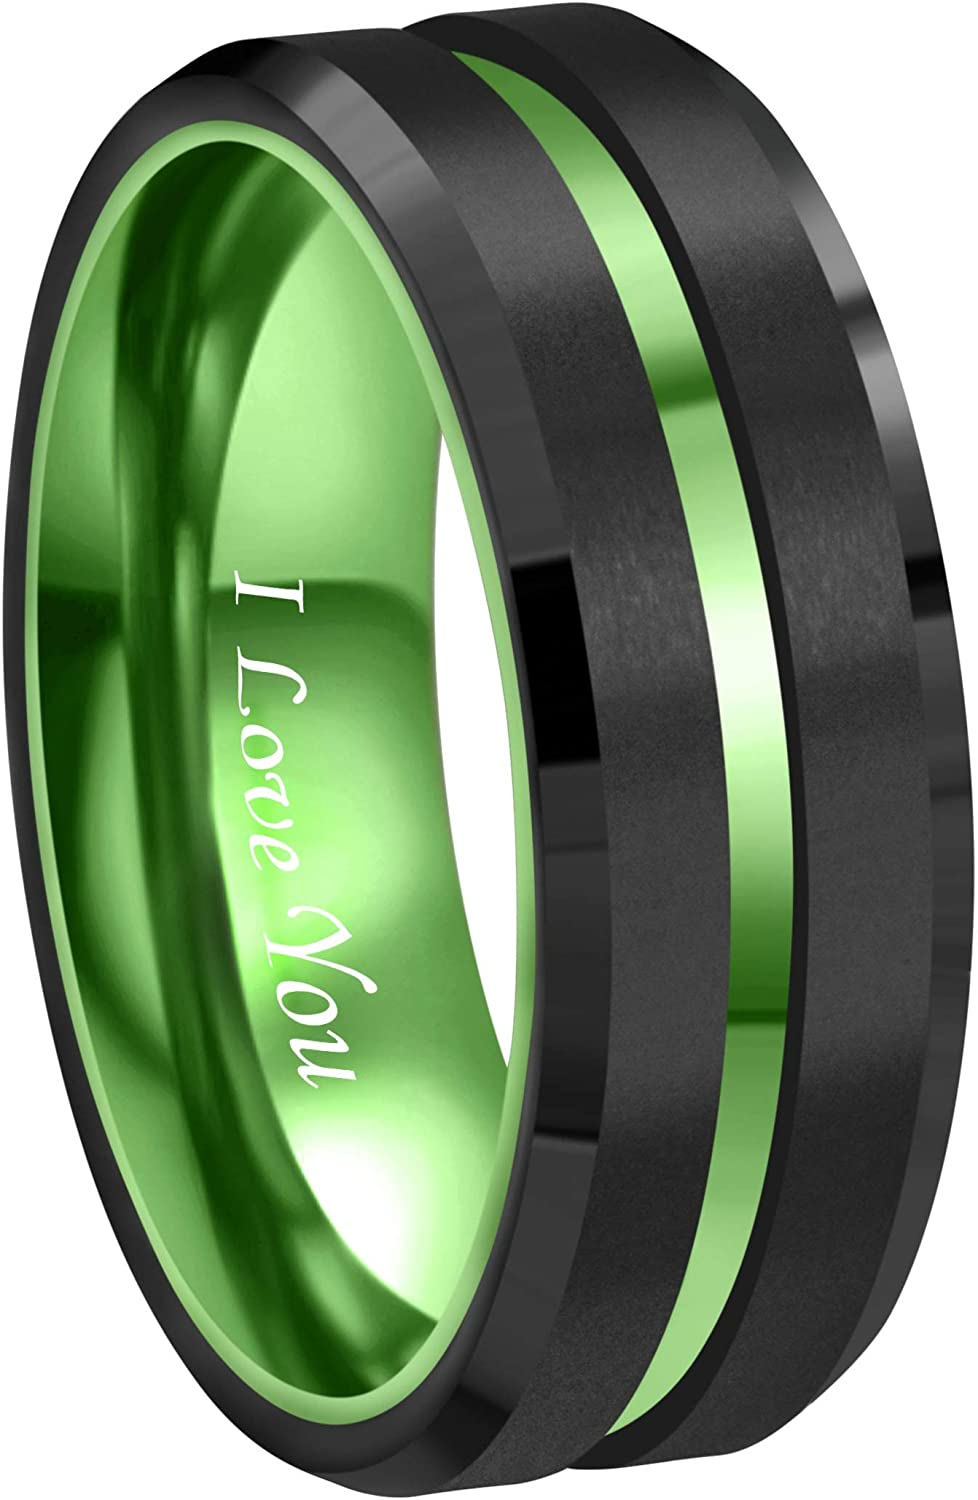 RoyalKay 8mm Green Black Tungsten Wedding Band Ring Men Women Matte Finish Polished Green Groove Engraved I Love You Comfort Fit Size 6 to 16